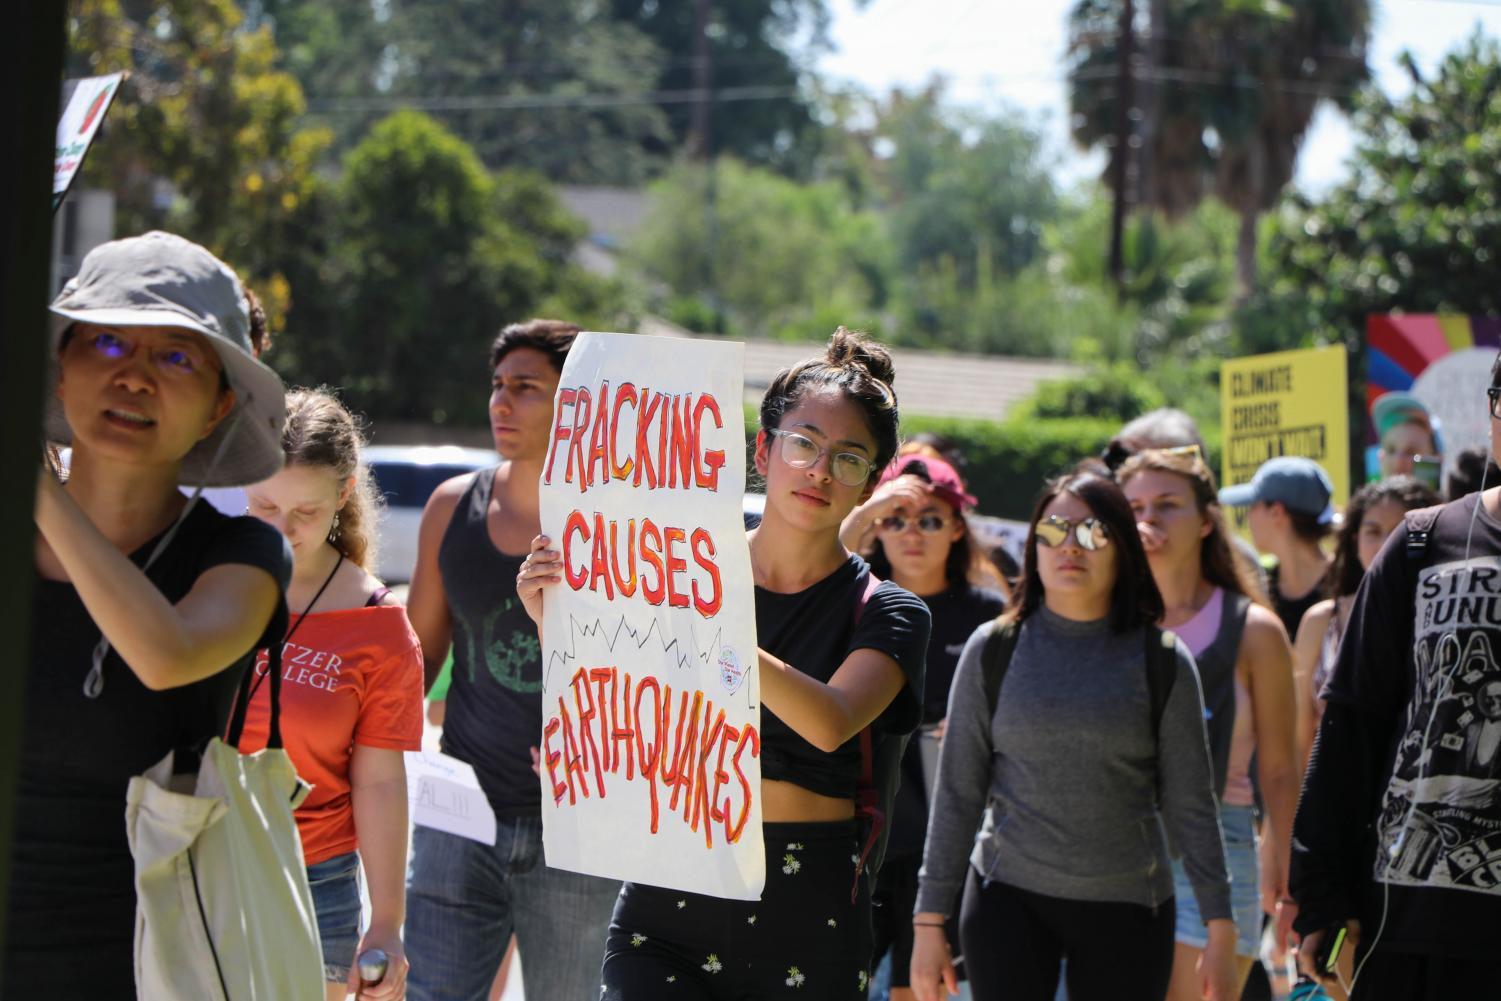 Students, professors and community members march side by side, united by the fear of the catastrophic effects of climate change. Photo credit: Elaine Sanders